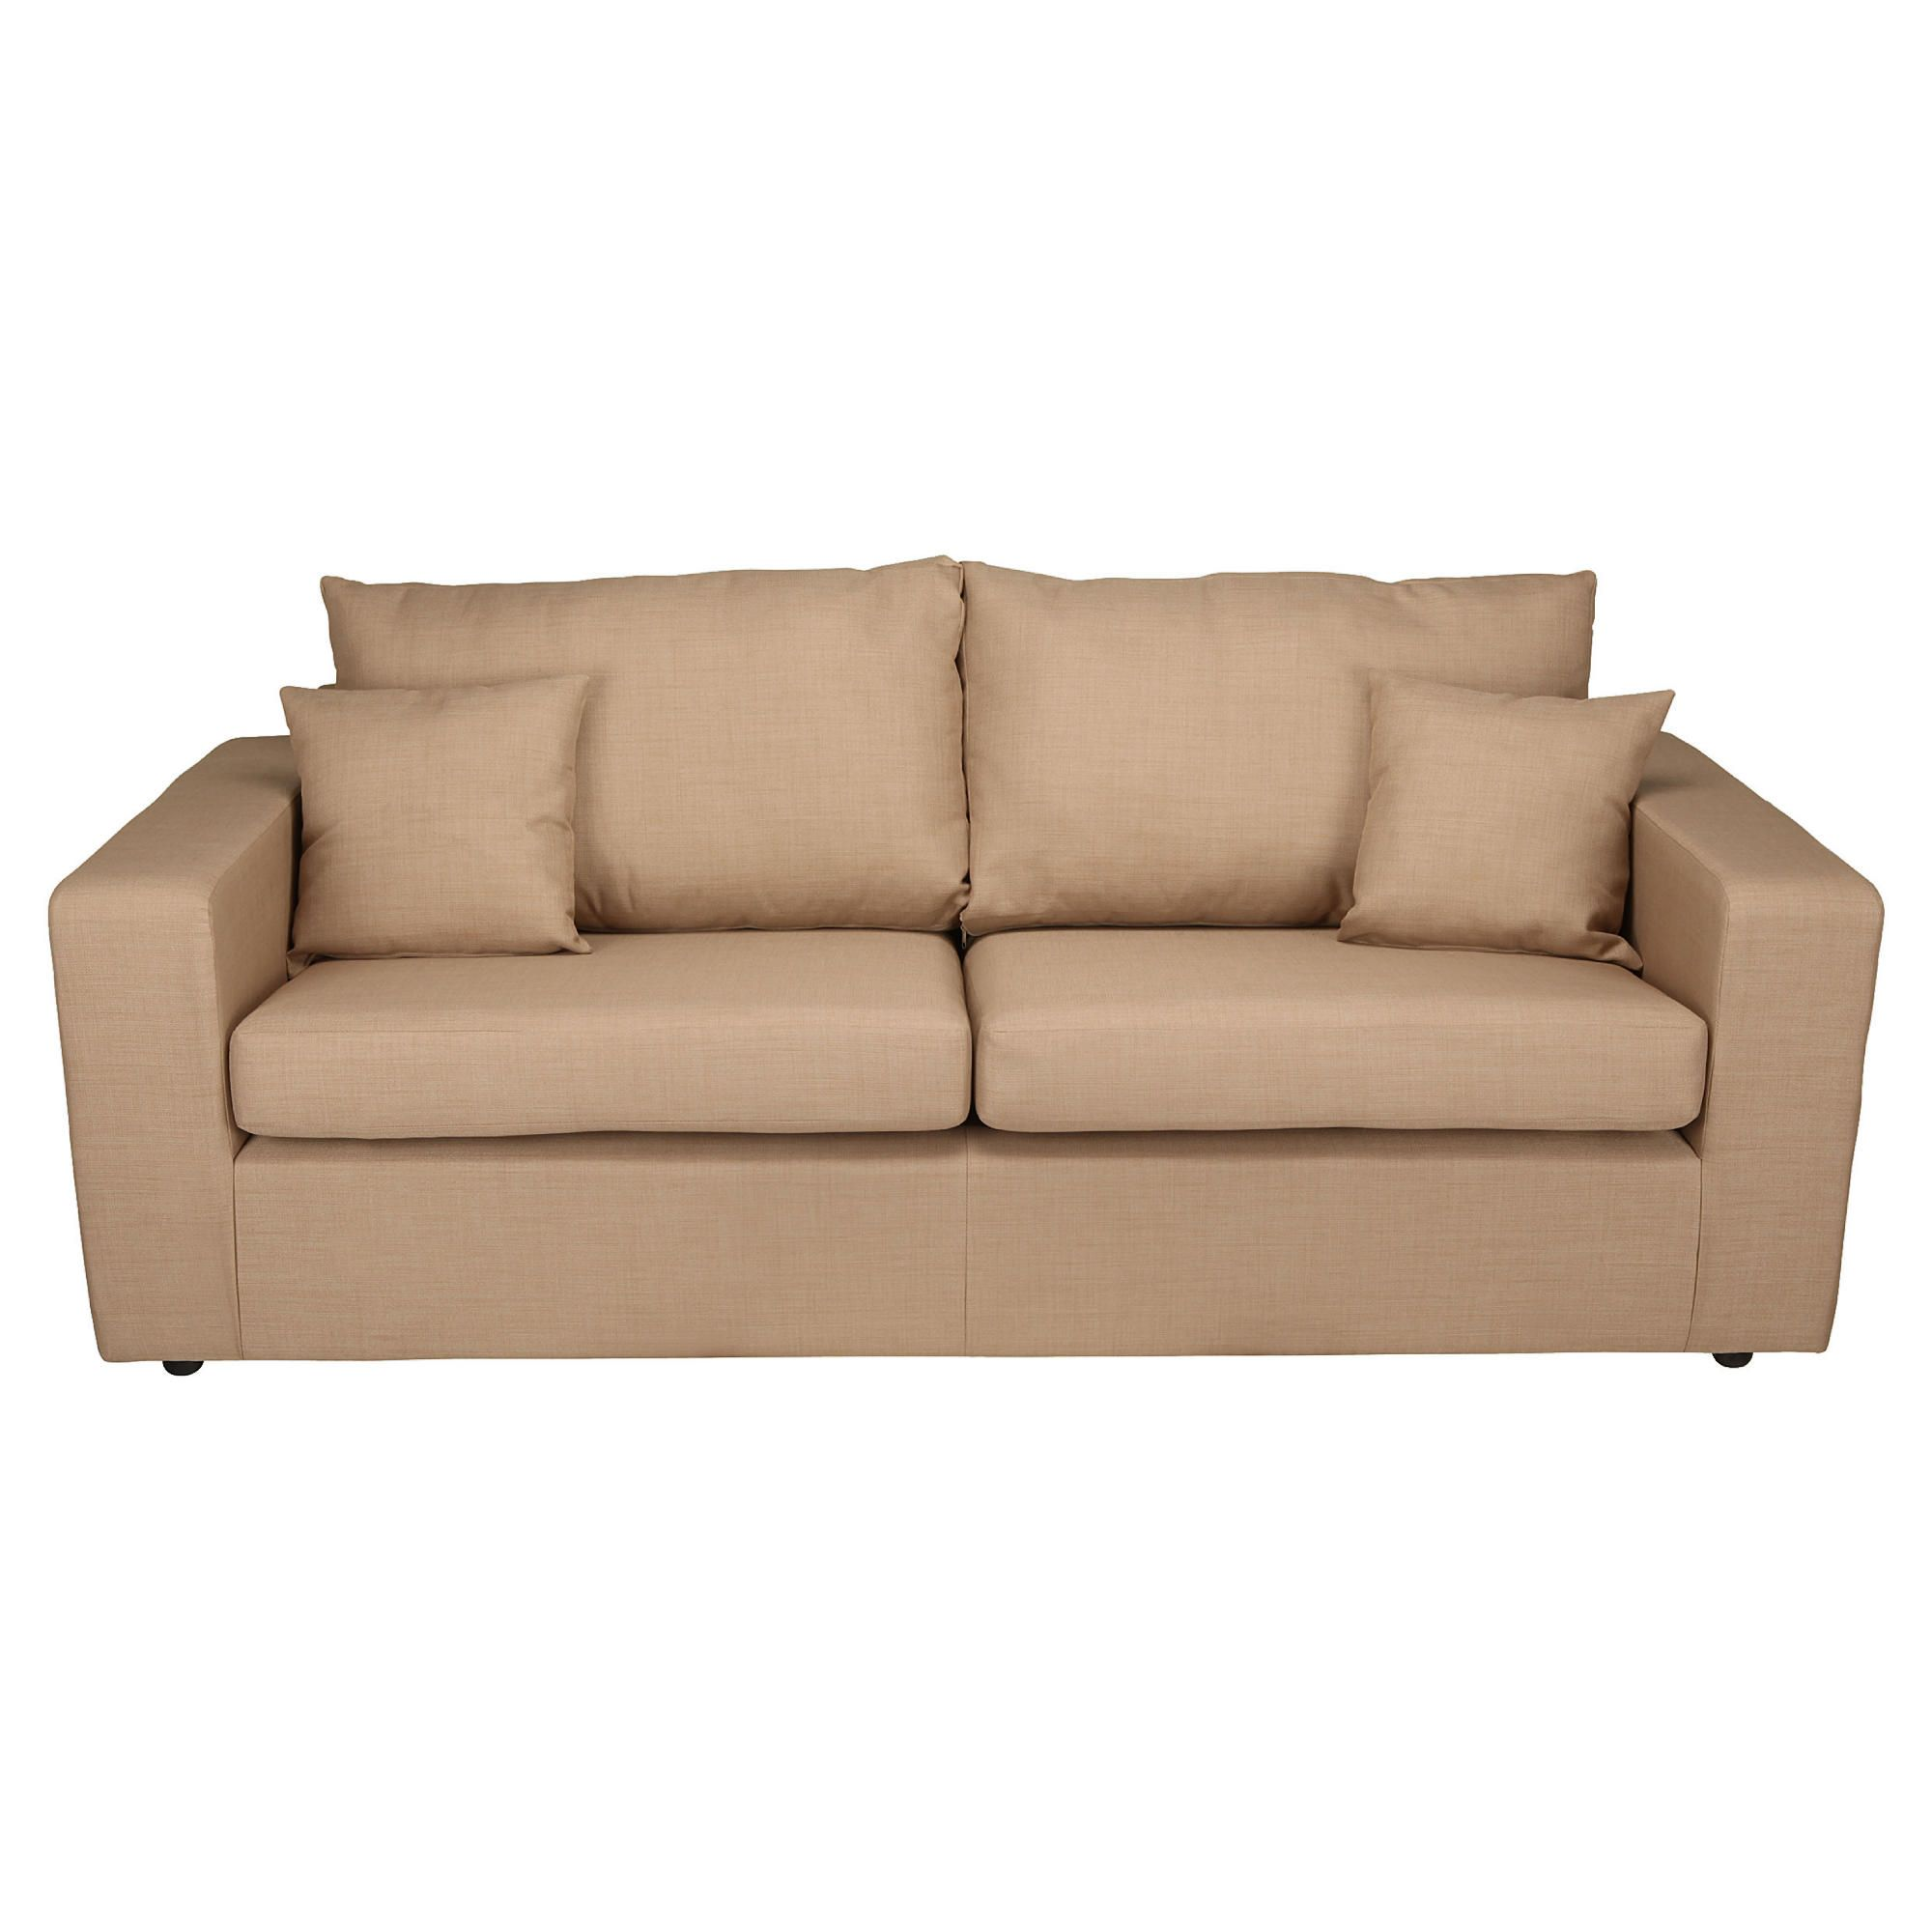 Maison Large Fabric Sofa, Linen at Tesco Direct